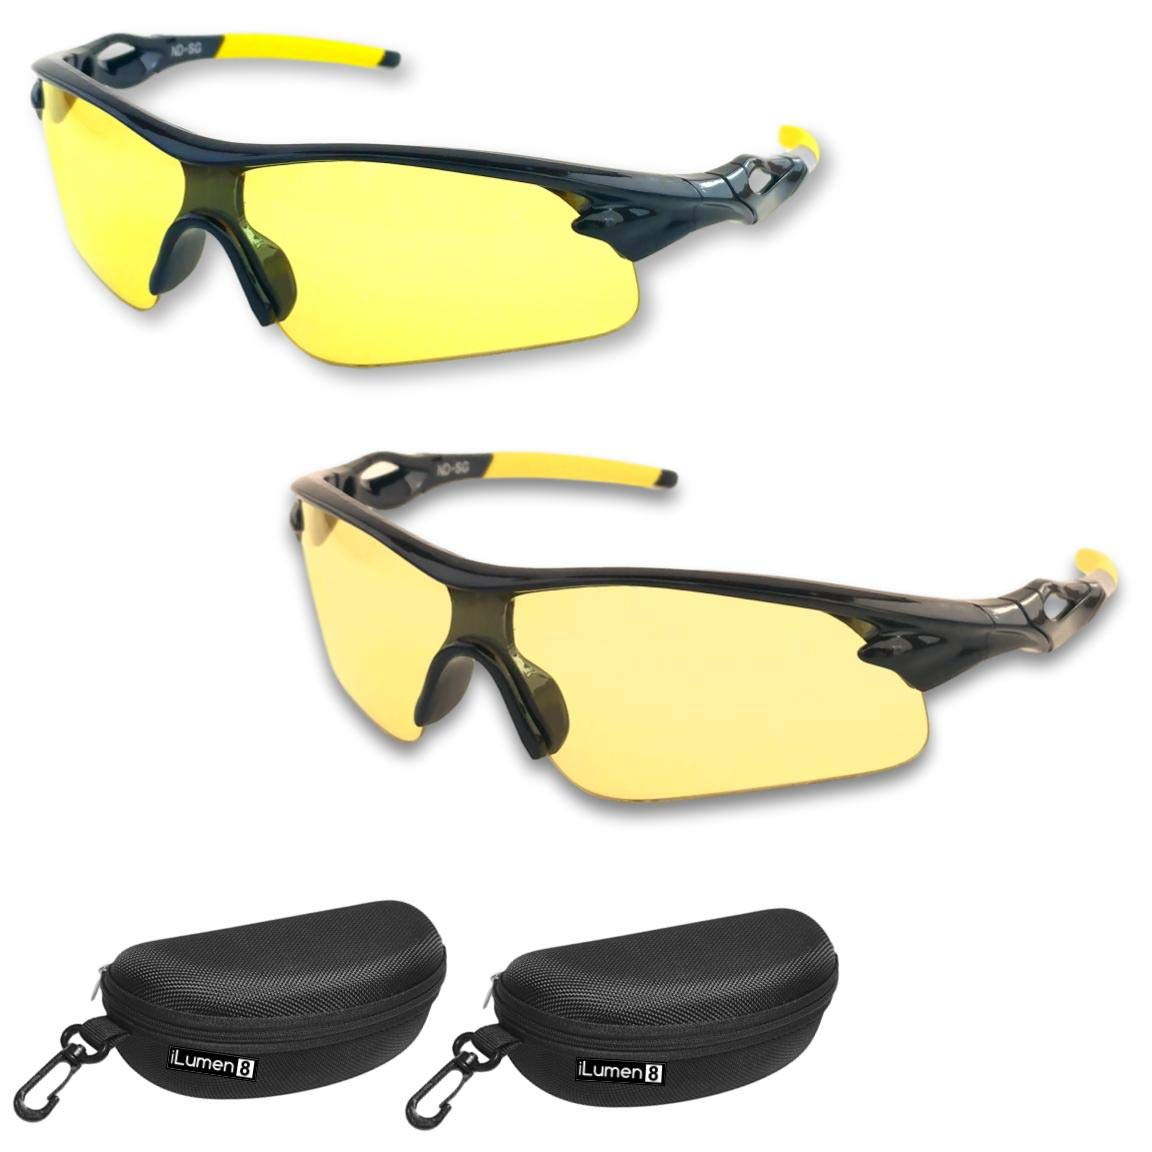 iLumen8 Best Shooting Glasses UV Blacklight Flashlight Yellow Safety Eye Protection See Dog Cat Urine with Amber Black Lights Night Vision Ultraviolet (Yellow & Amber-Yellow, 2 Pair) by iLumen8